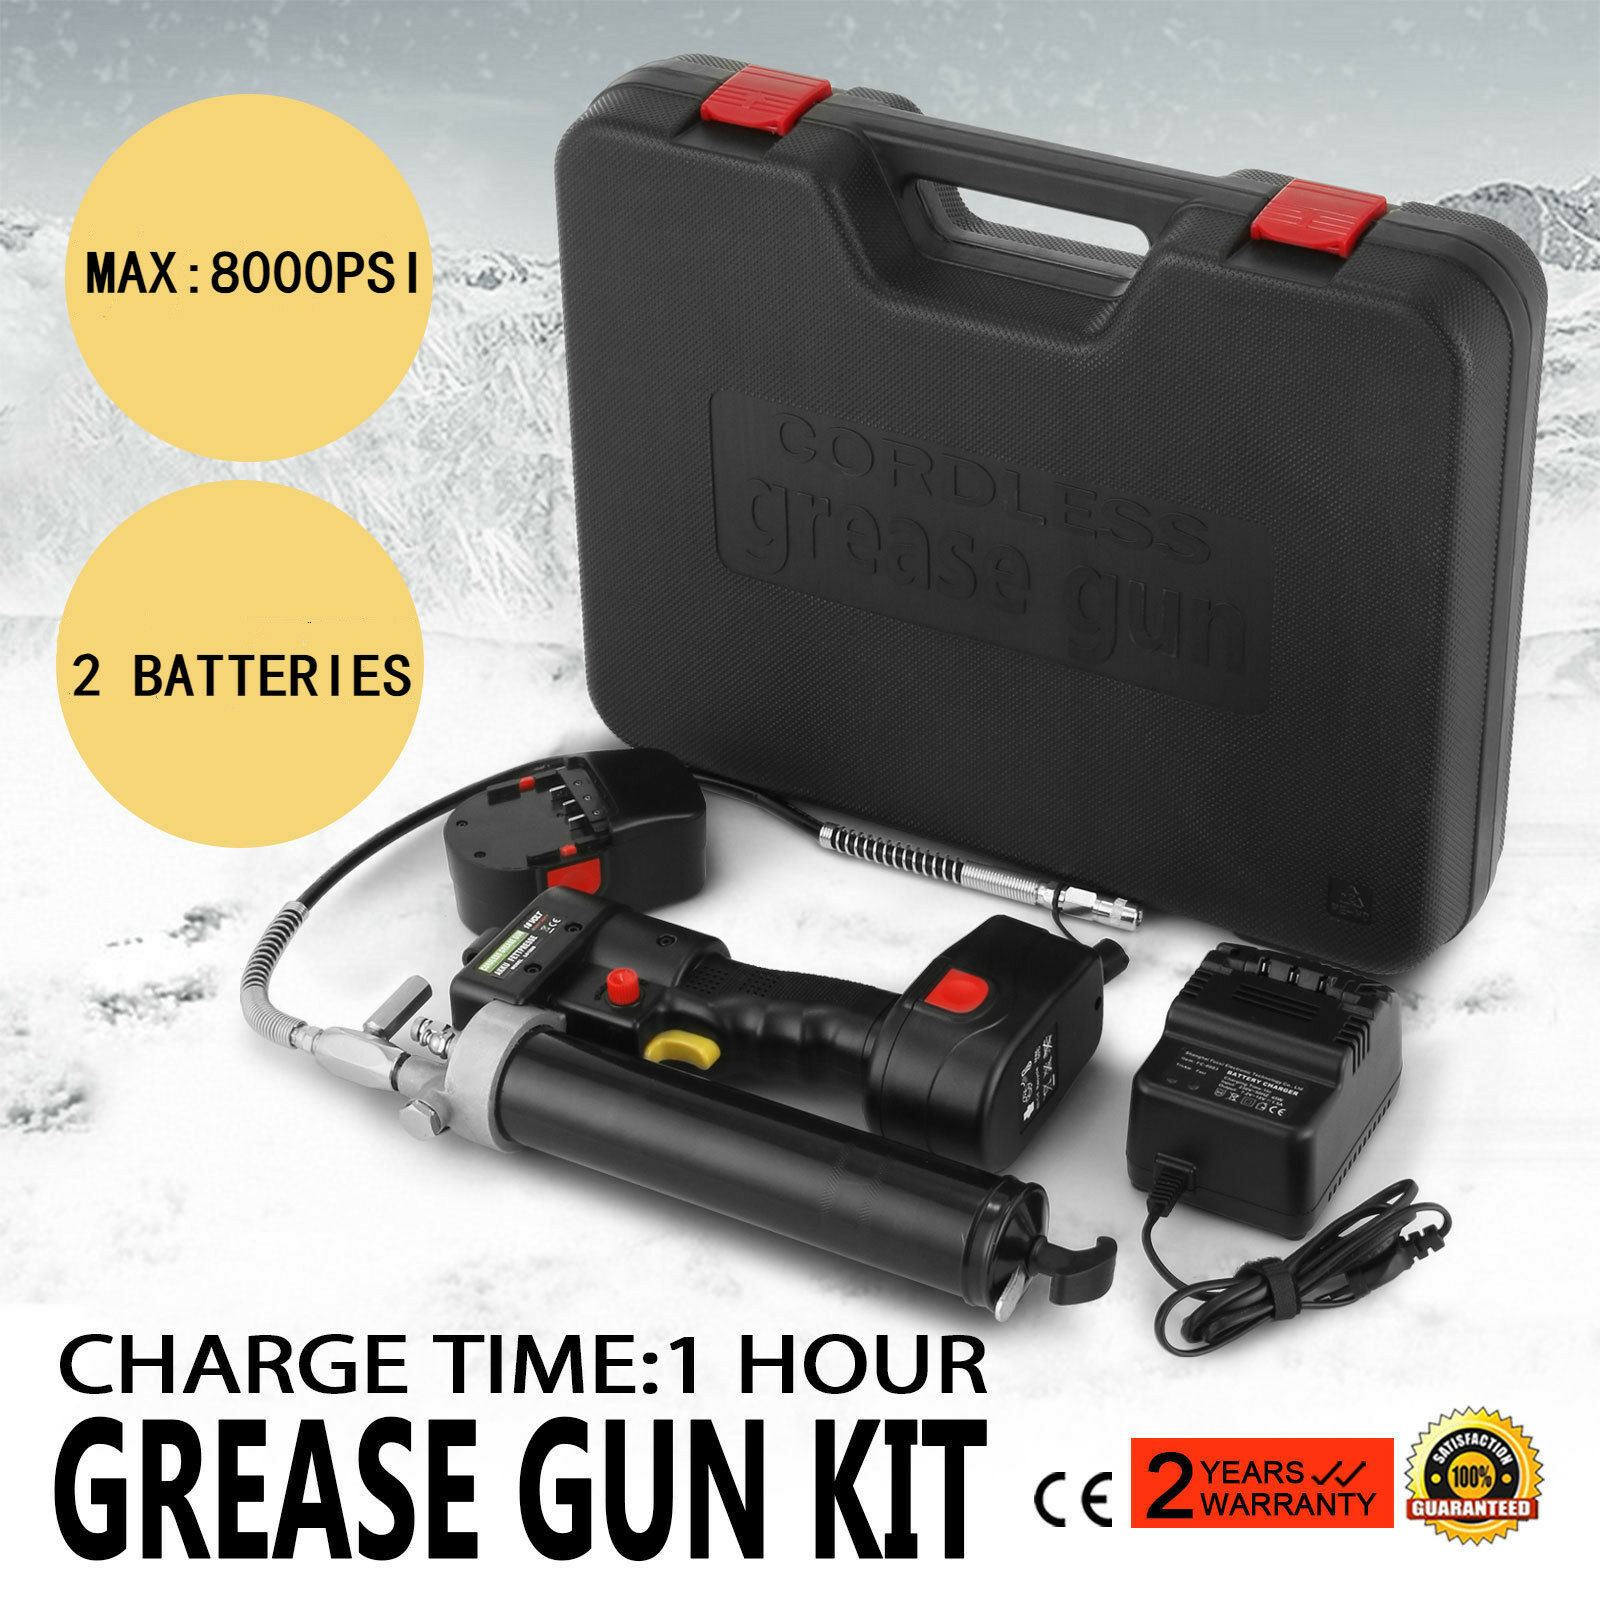 Free Shipping For RU Electrical Grease Gun Cordless Battery 18V 107cm 8000PSI Heavy + 2 Batteries LCD Grease Level